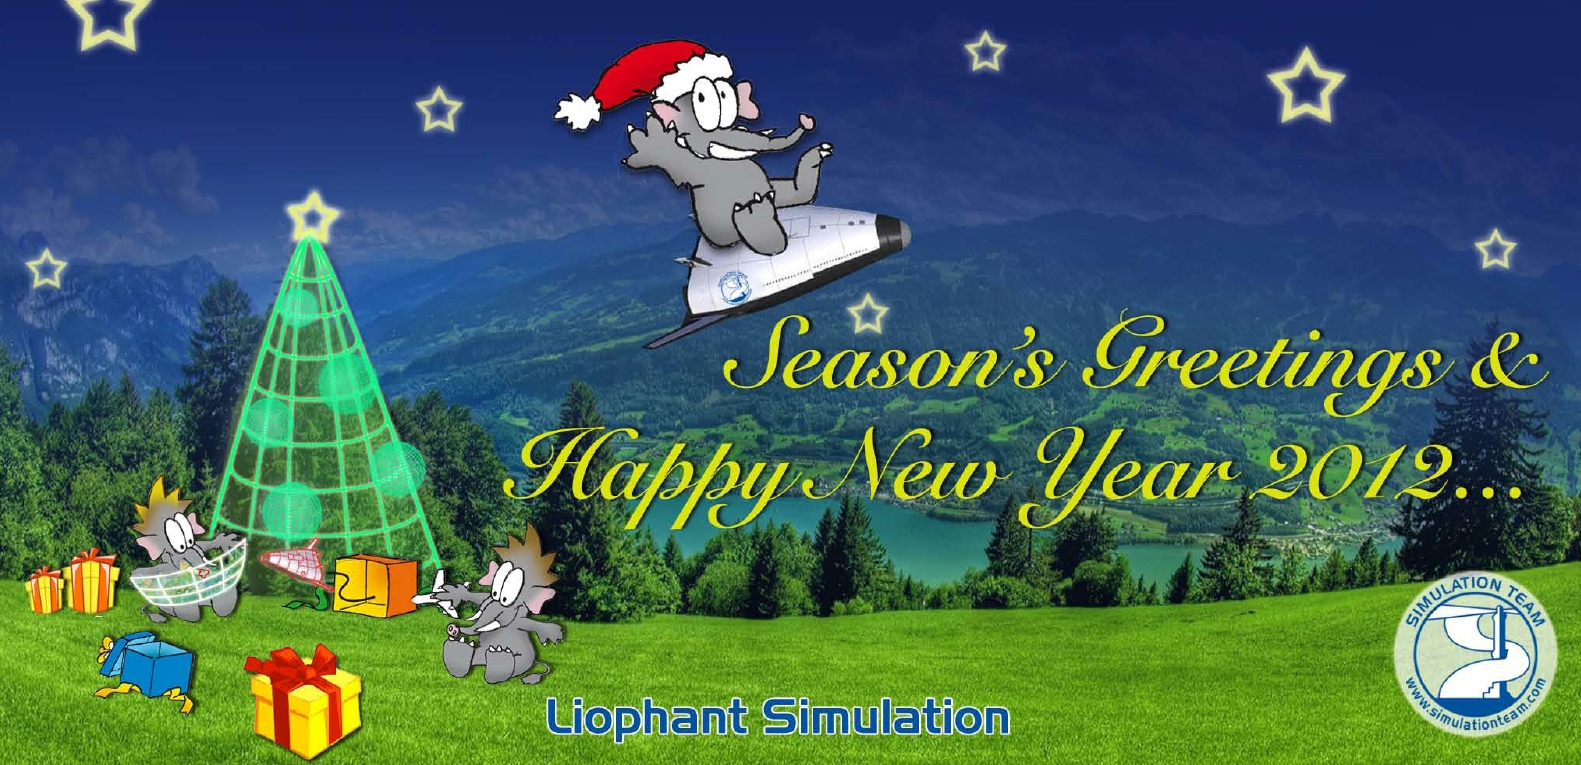 Liophant & Simulation Team Season's Greetings